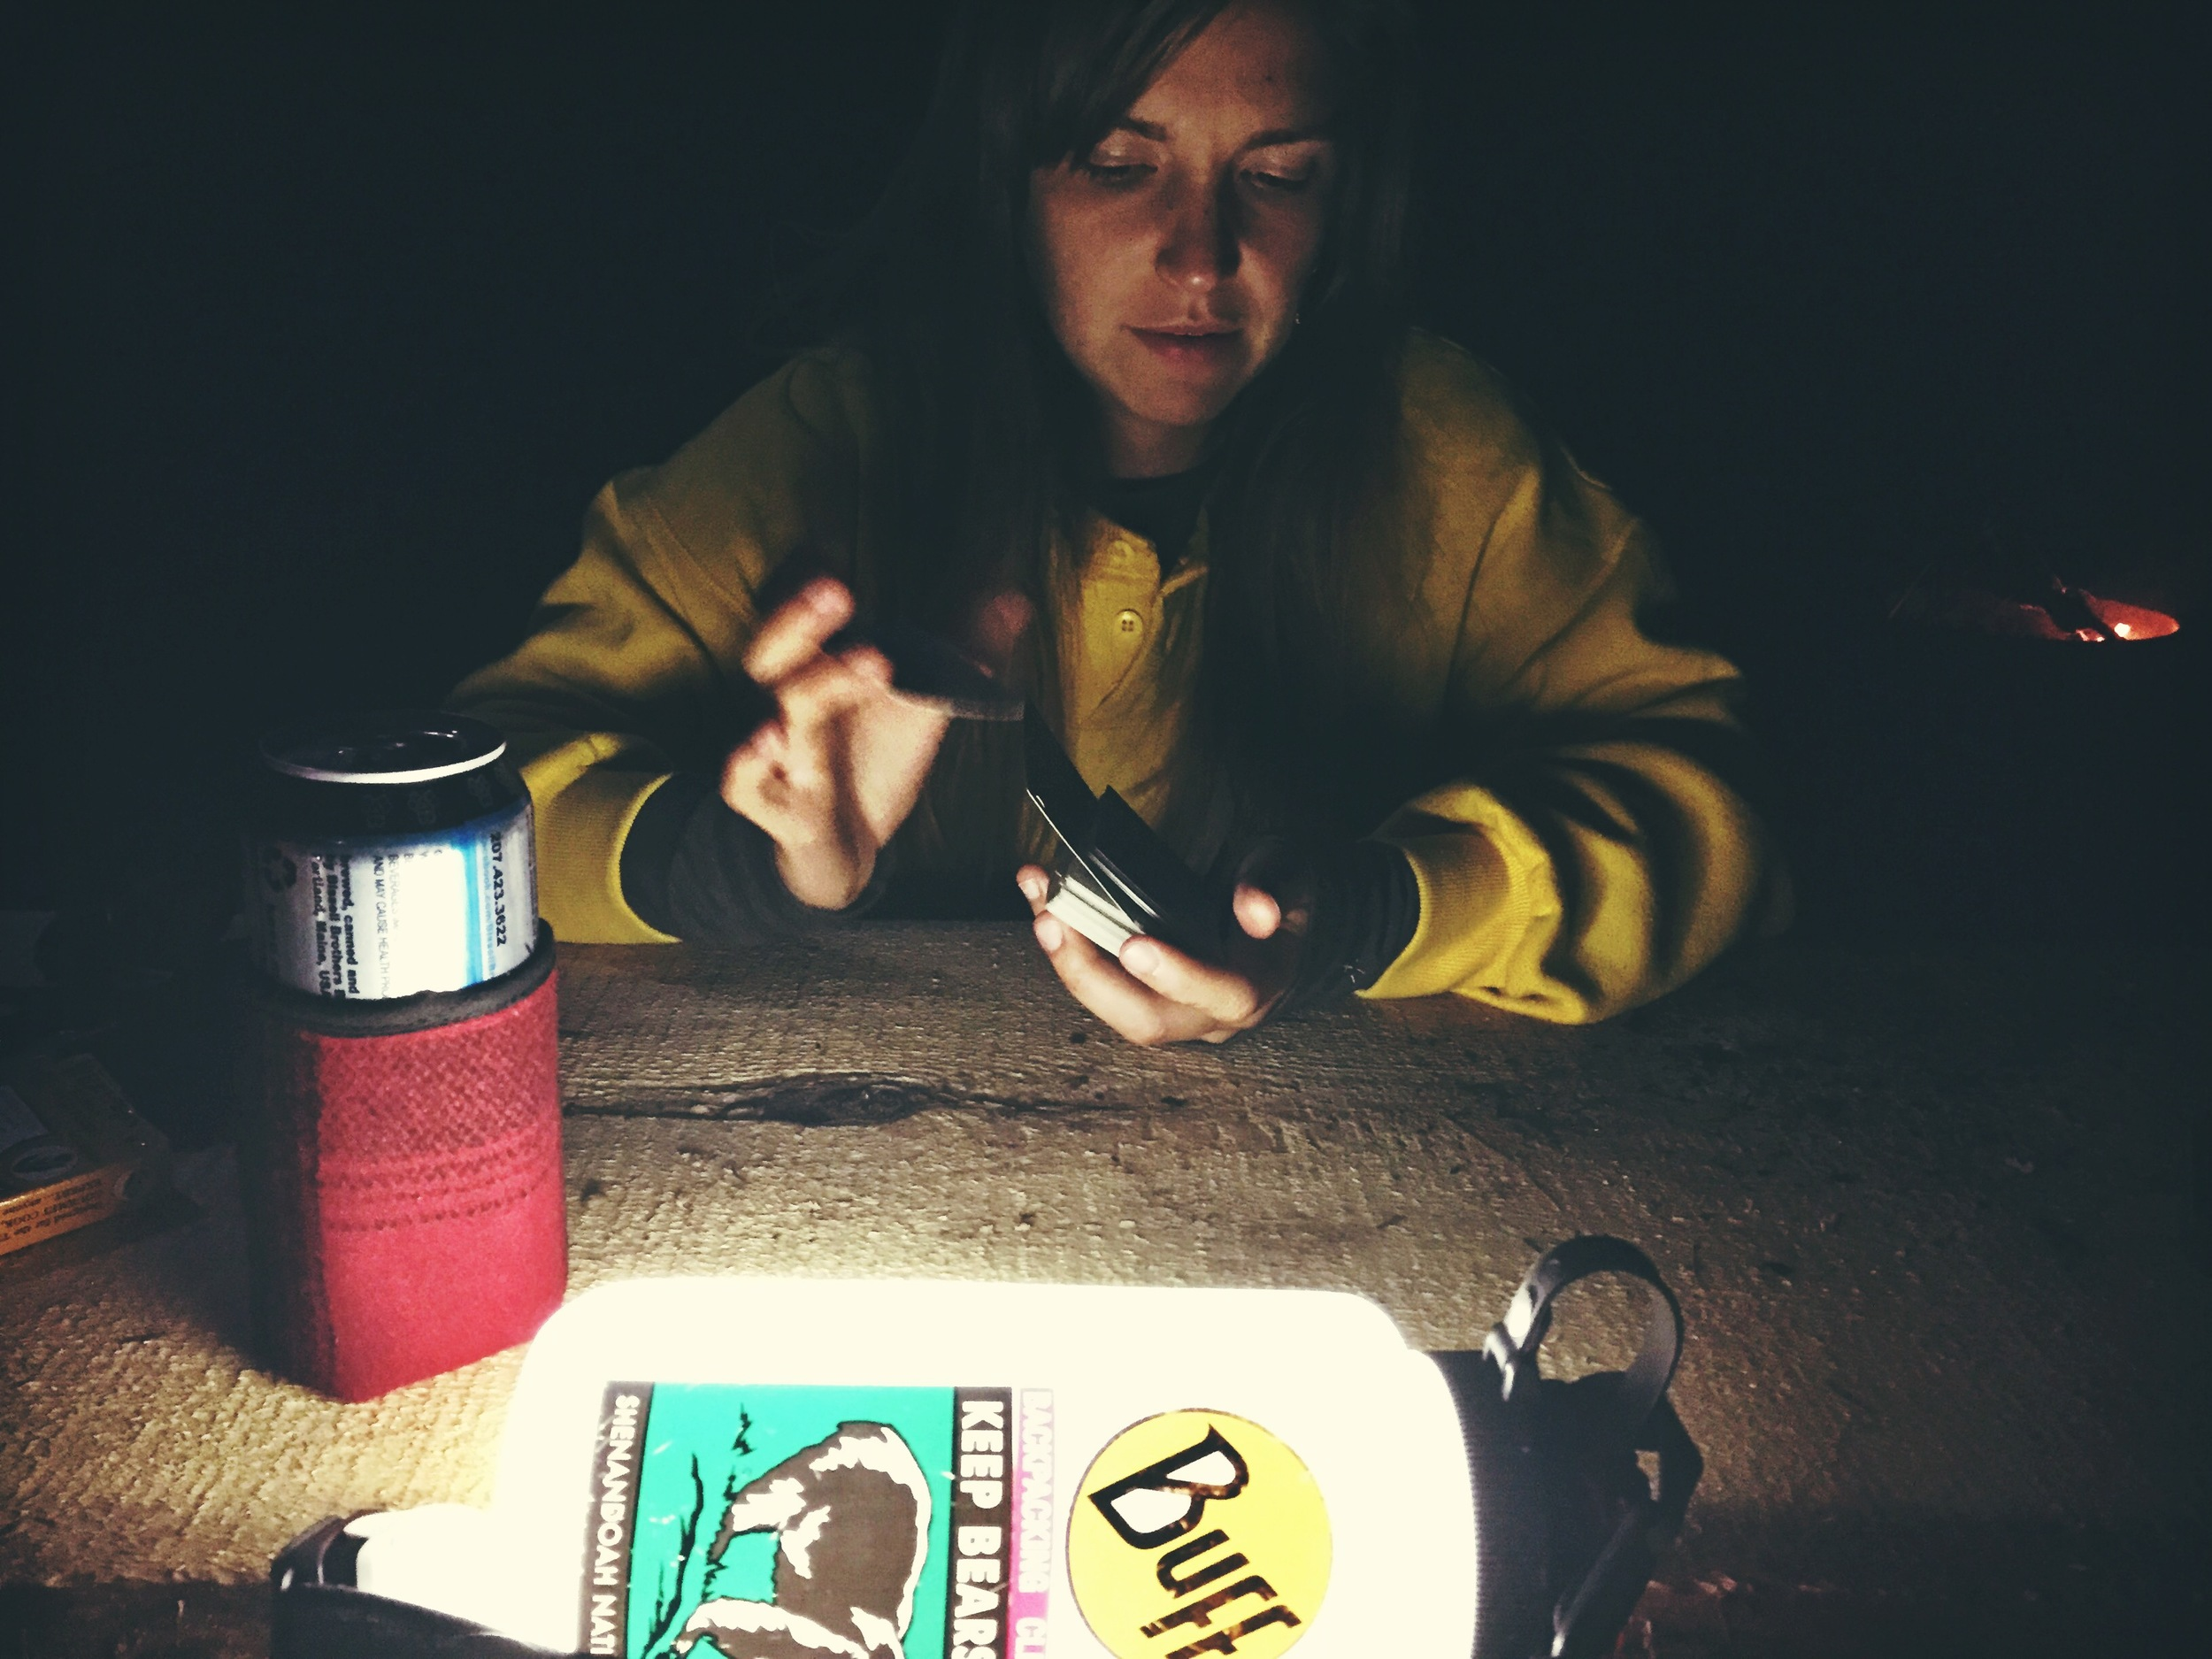 Playing cards by the light of our headlamps.